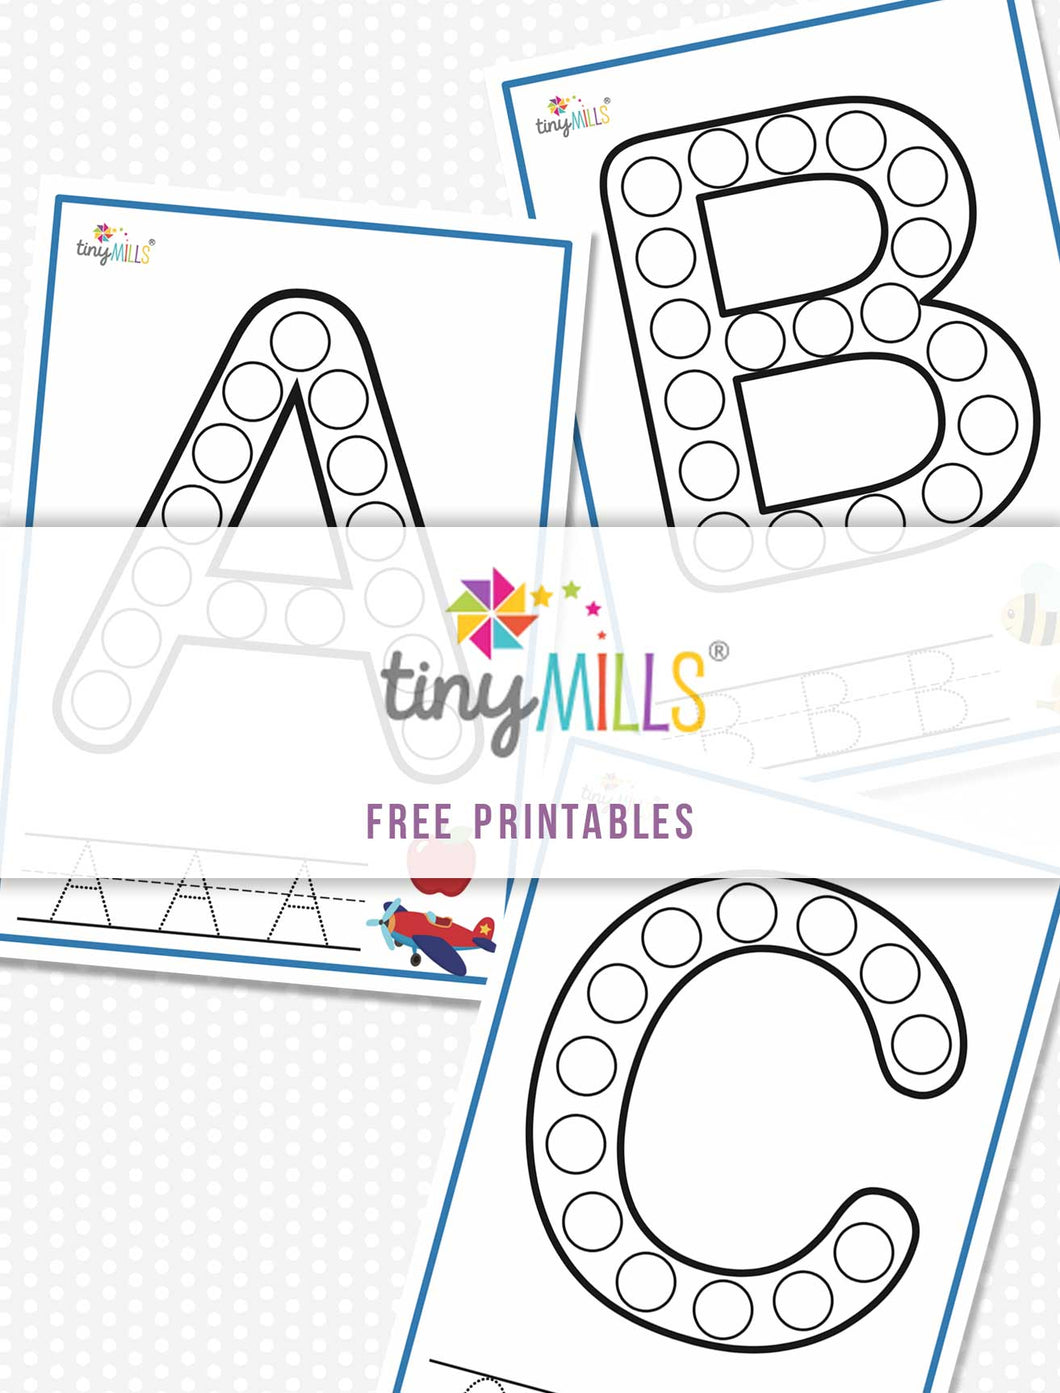 Free Printables Stamp & Count ABC Worksheet (Full 26 Alphabet)